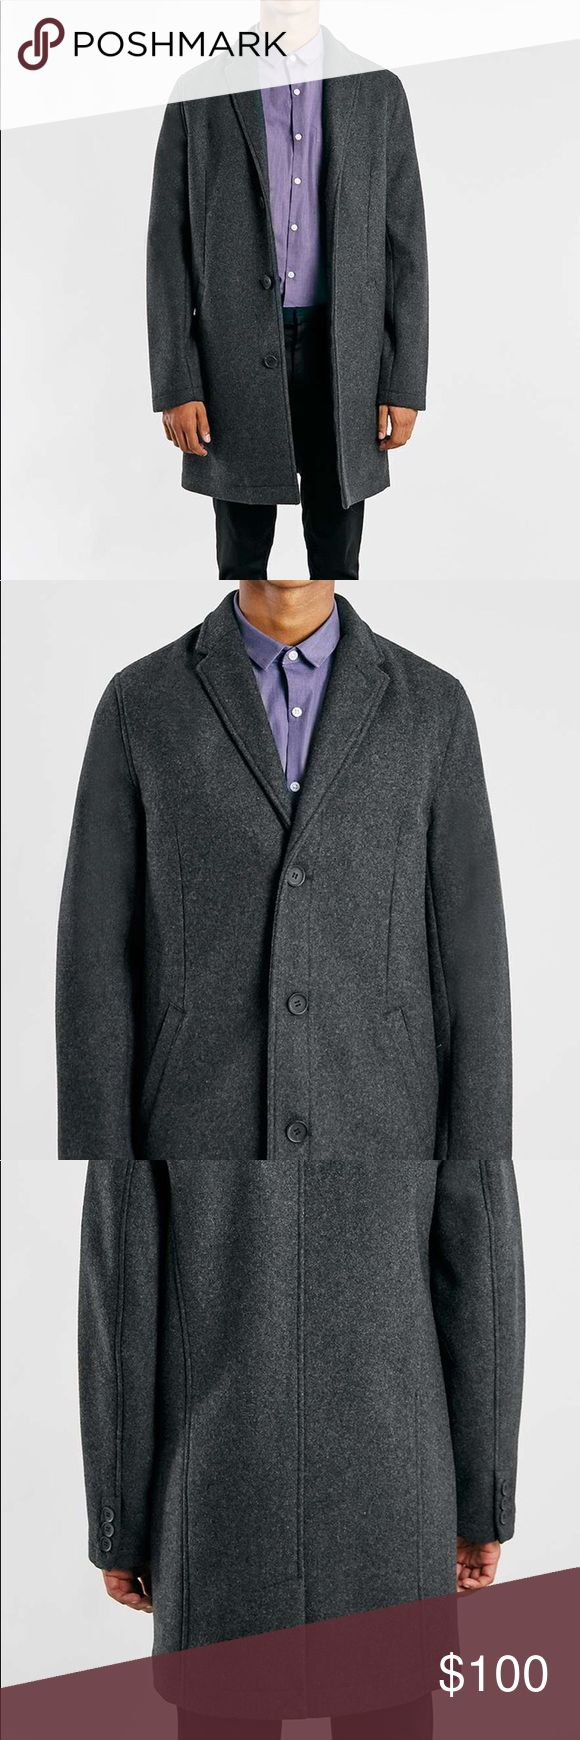 CHARCOAL WOOL BLEND OVERCOAT • Charcoal wool blend overcoat with tonal buttons and warm inner lining. • 52% Wool, 43% Polyester, 2% Acrylic, 2% Viscose, 1% Nylon. • Dry clean only. • Model is 6 foot 1 and wears a medium • Colour: GREY Topman Jackets & Coats